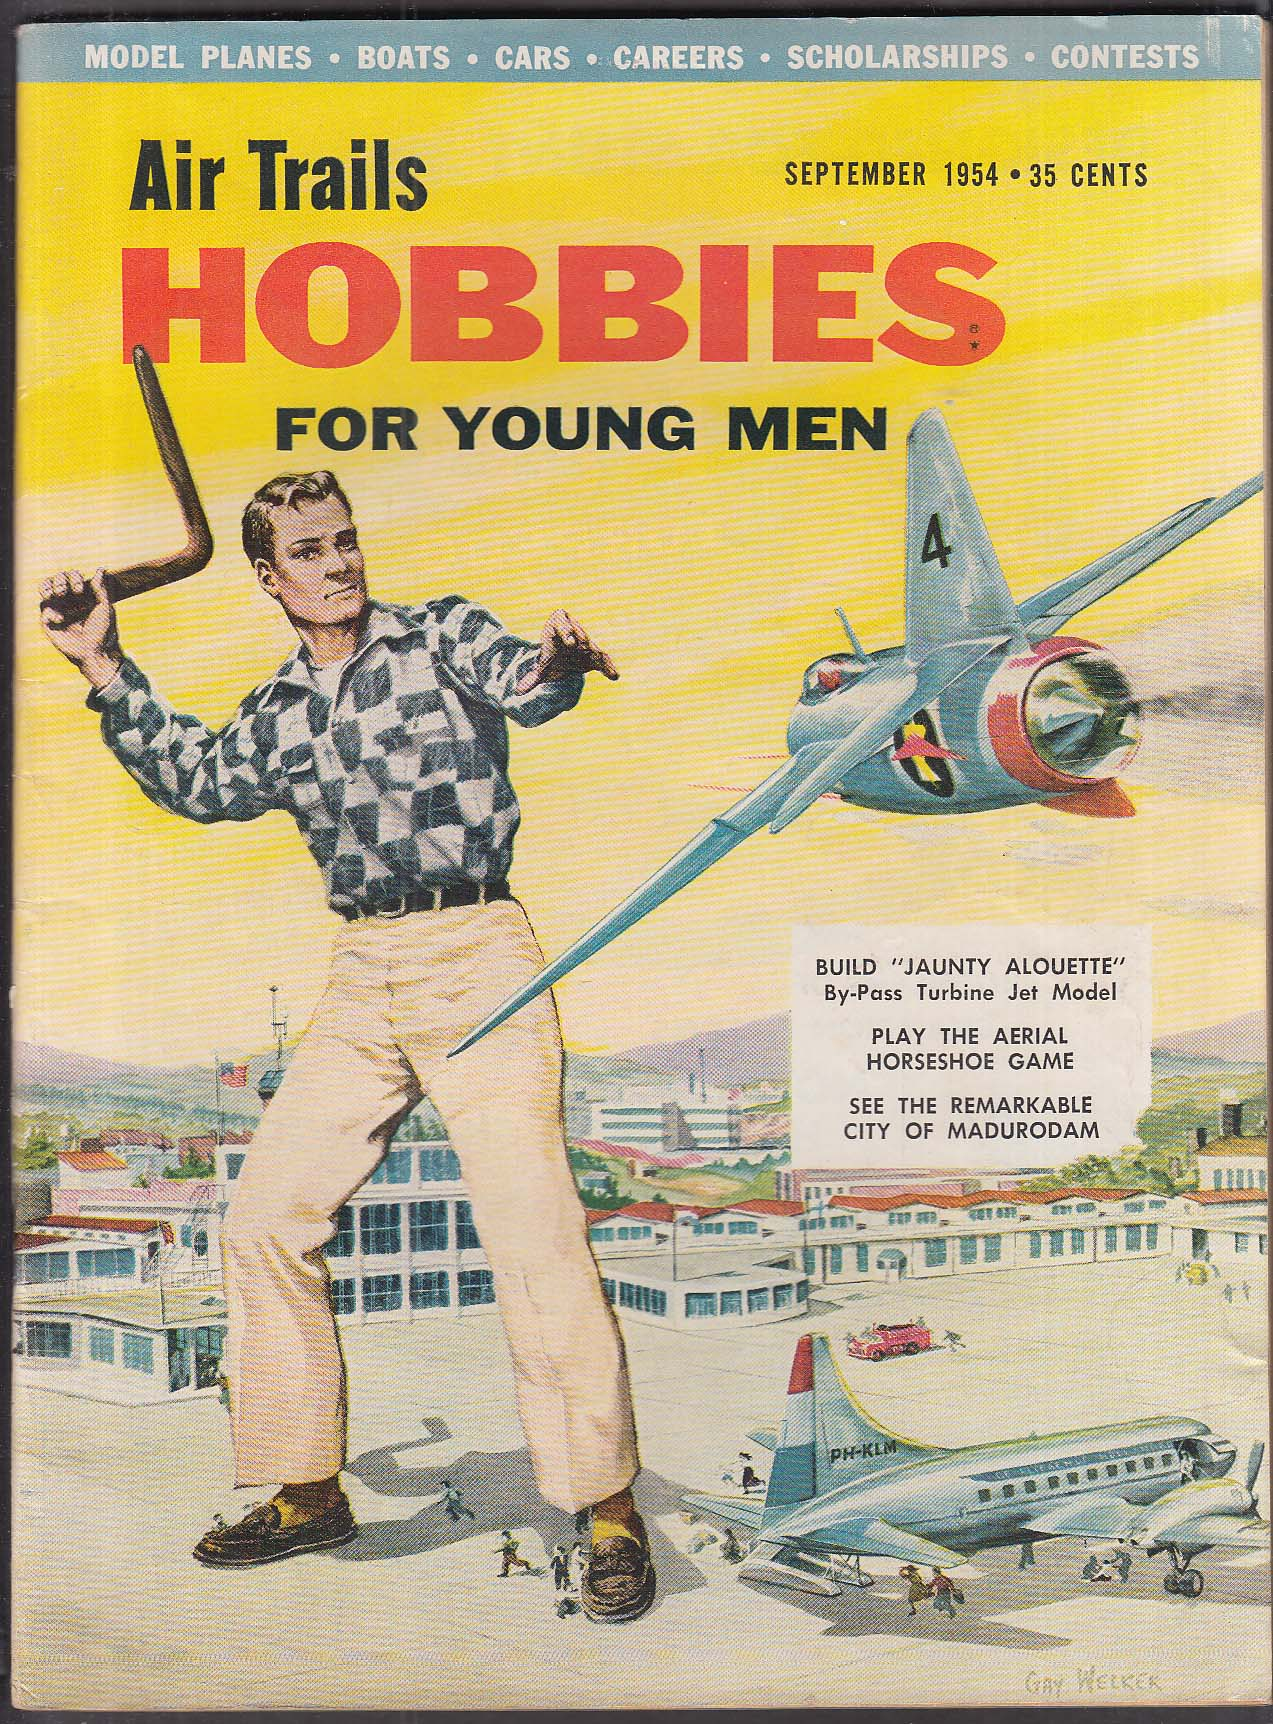 Air Trails HOBBIES for Young Men Macchi Saetta Lockheed XFV-1 Alouette + 9 1954